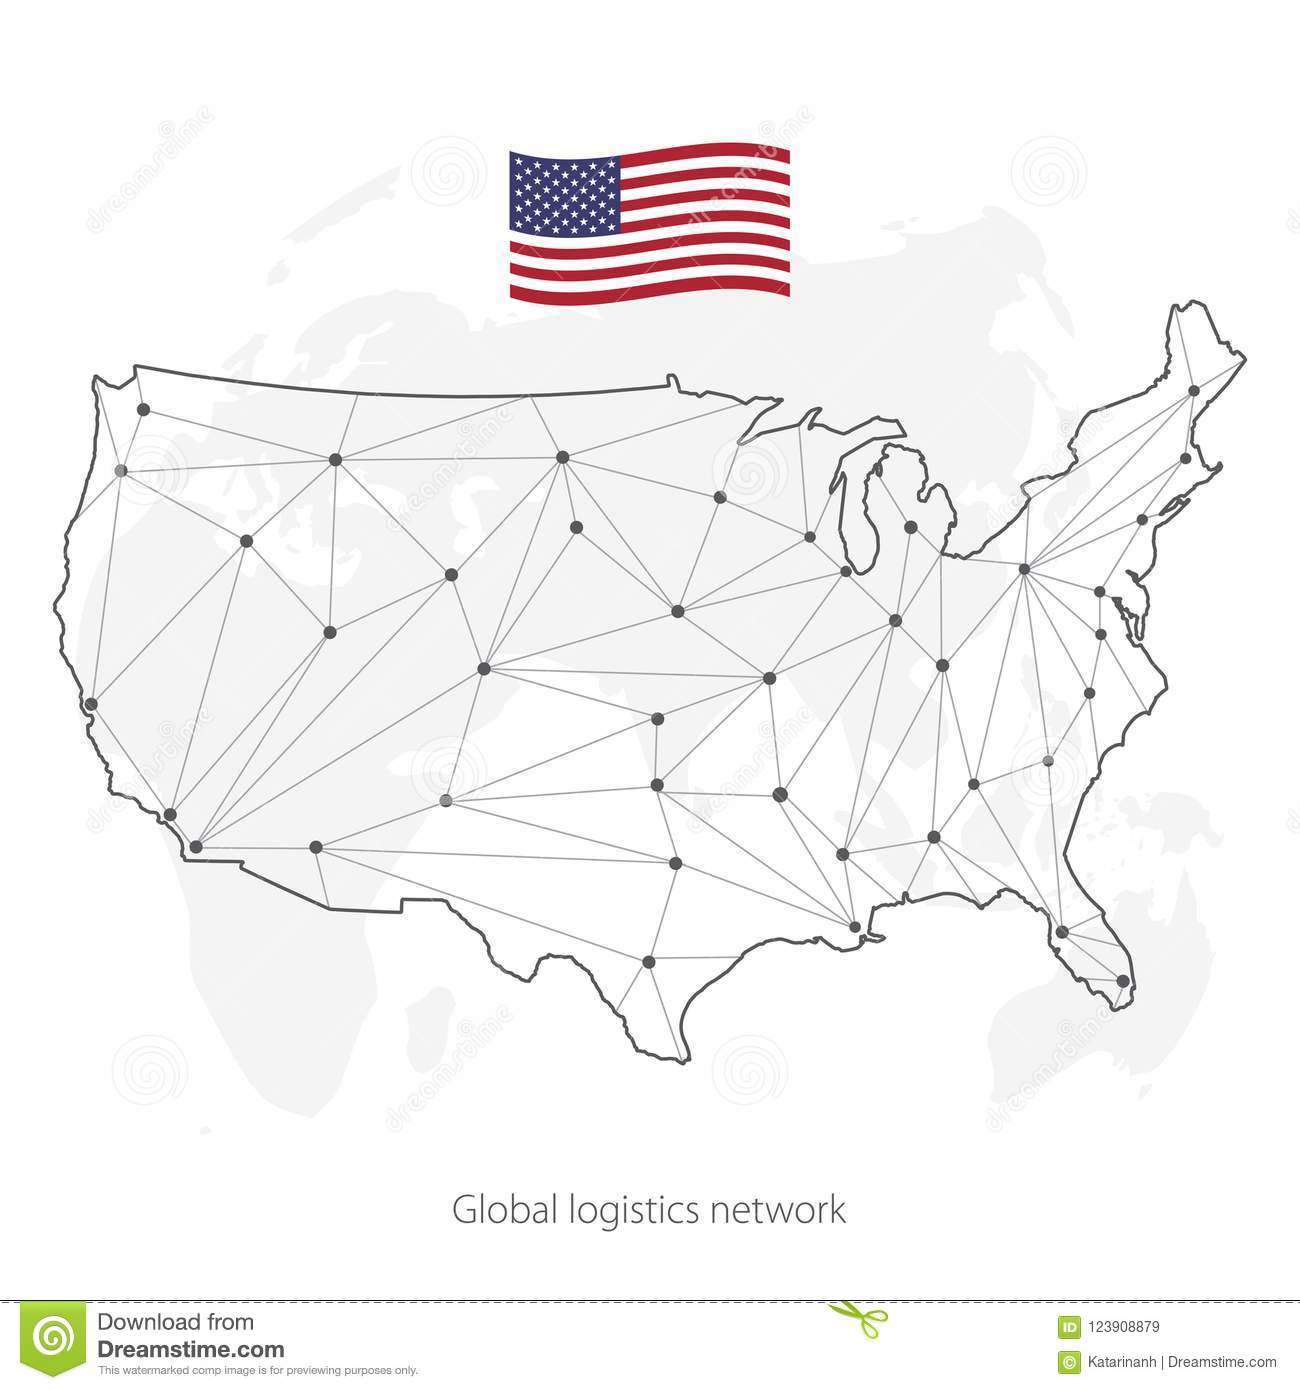 global logistics network concept communications network map of the